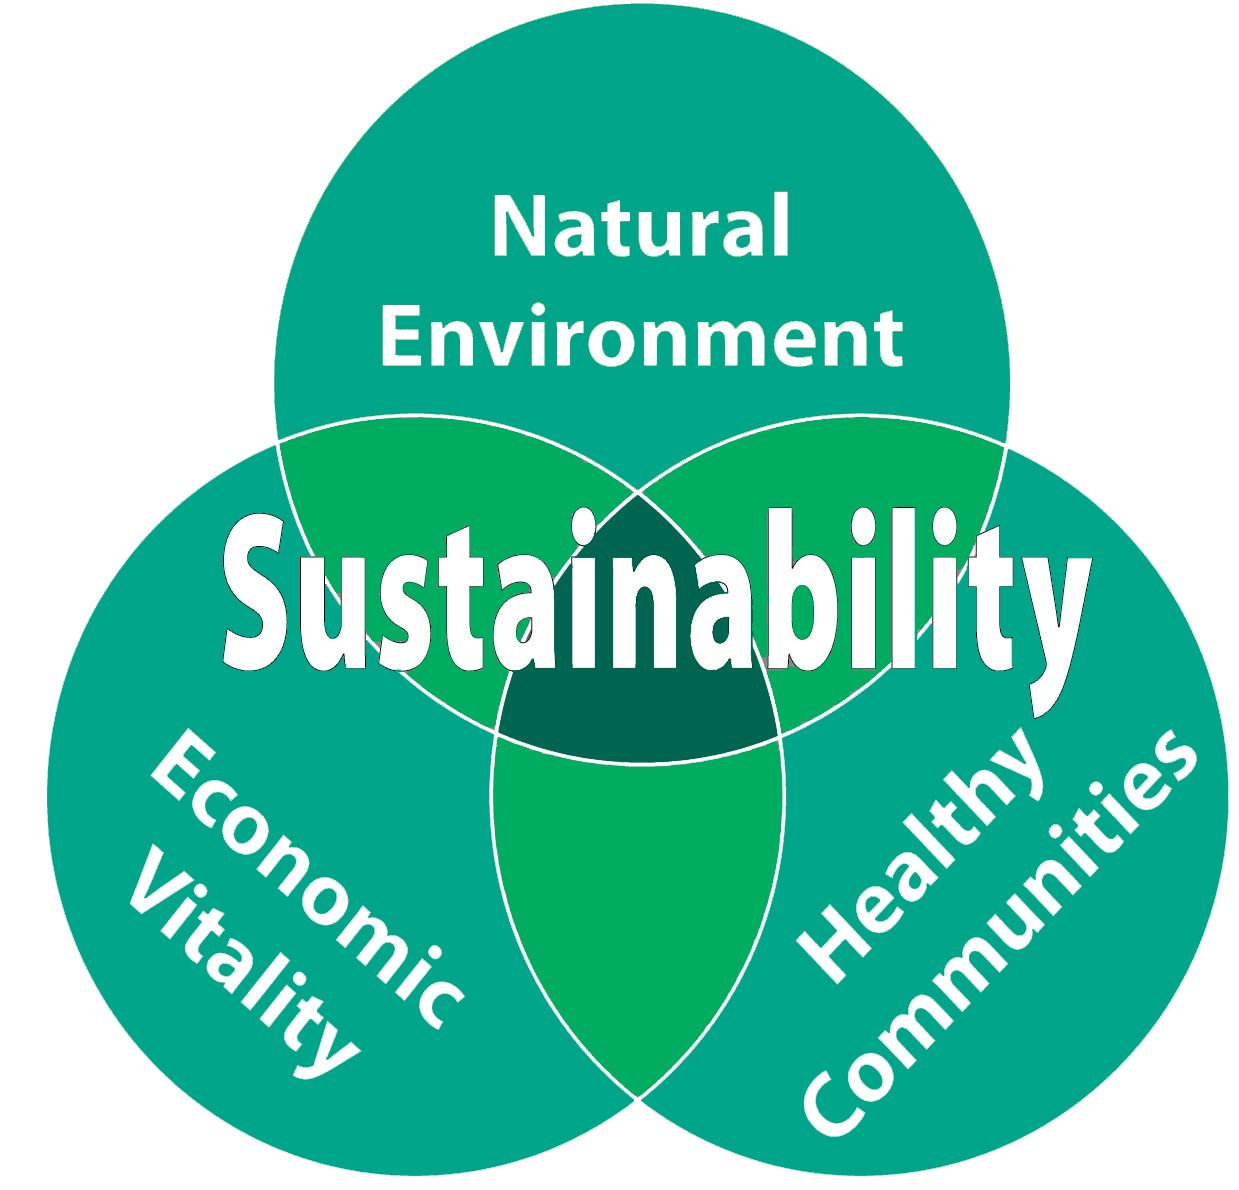 004 Sustainability 101. Towards sustainable cities and